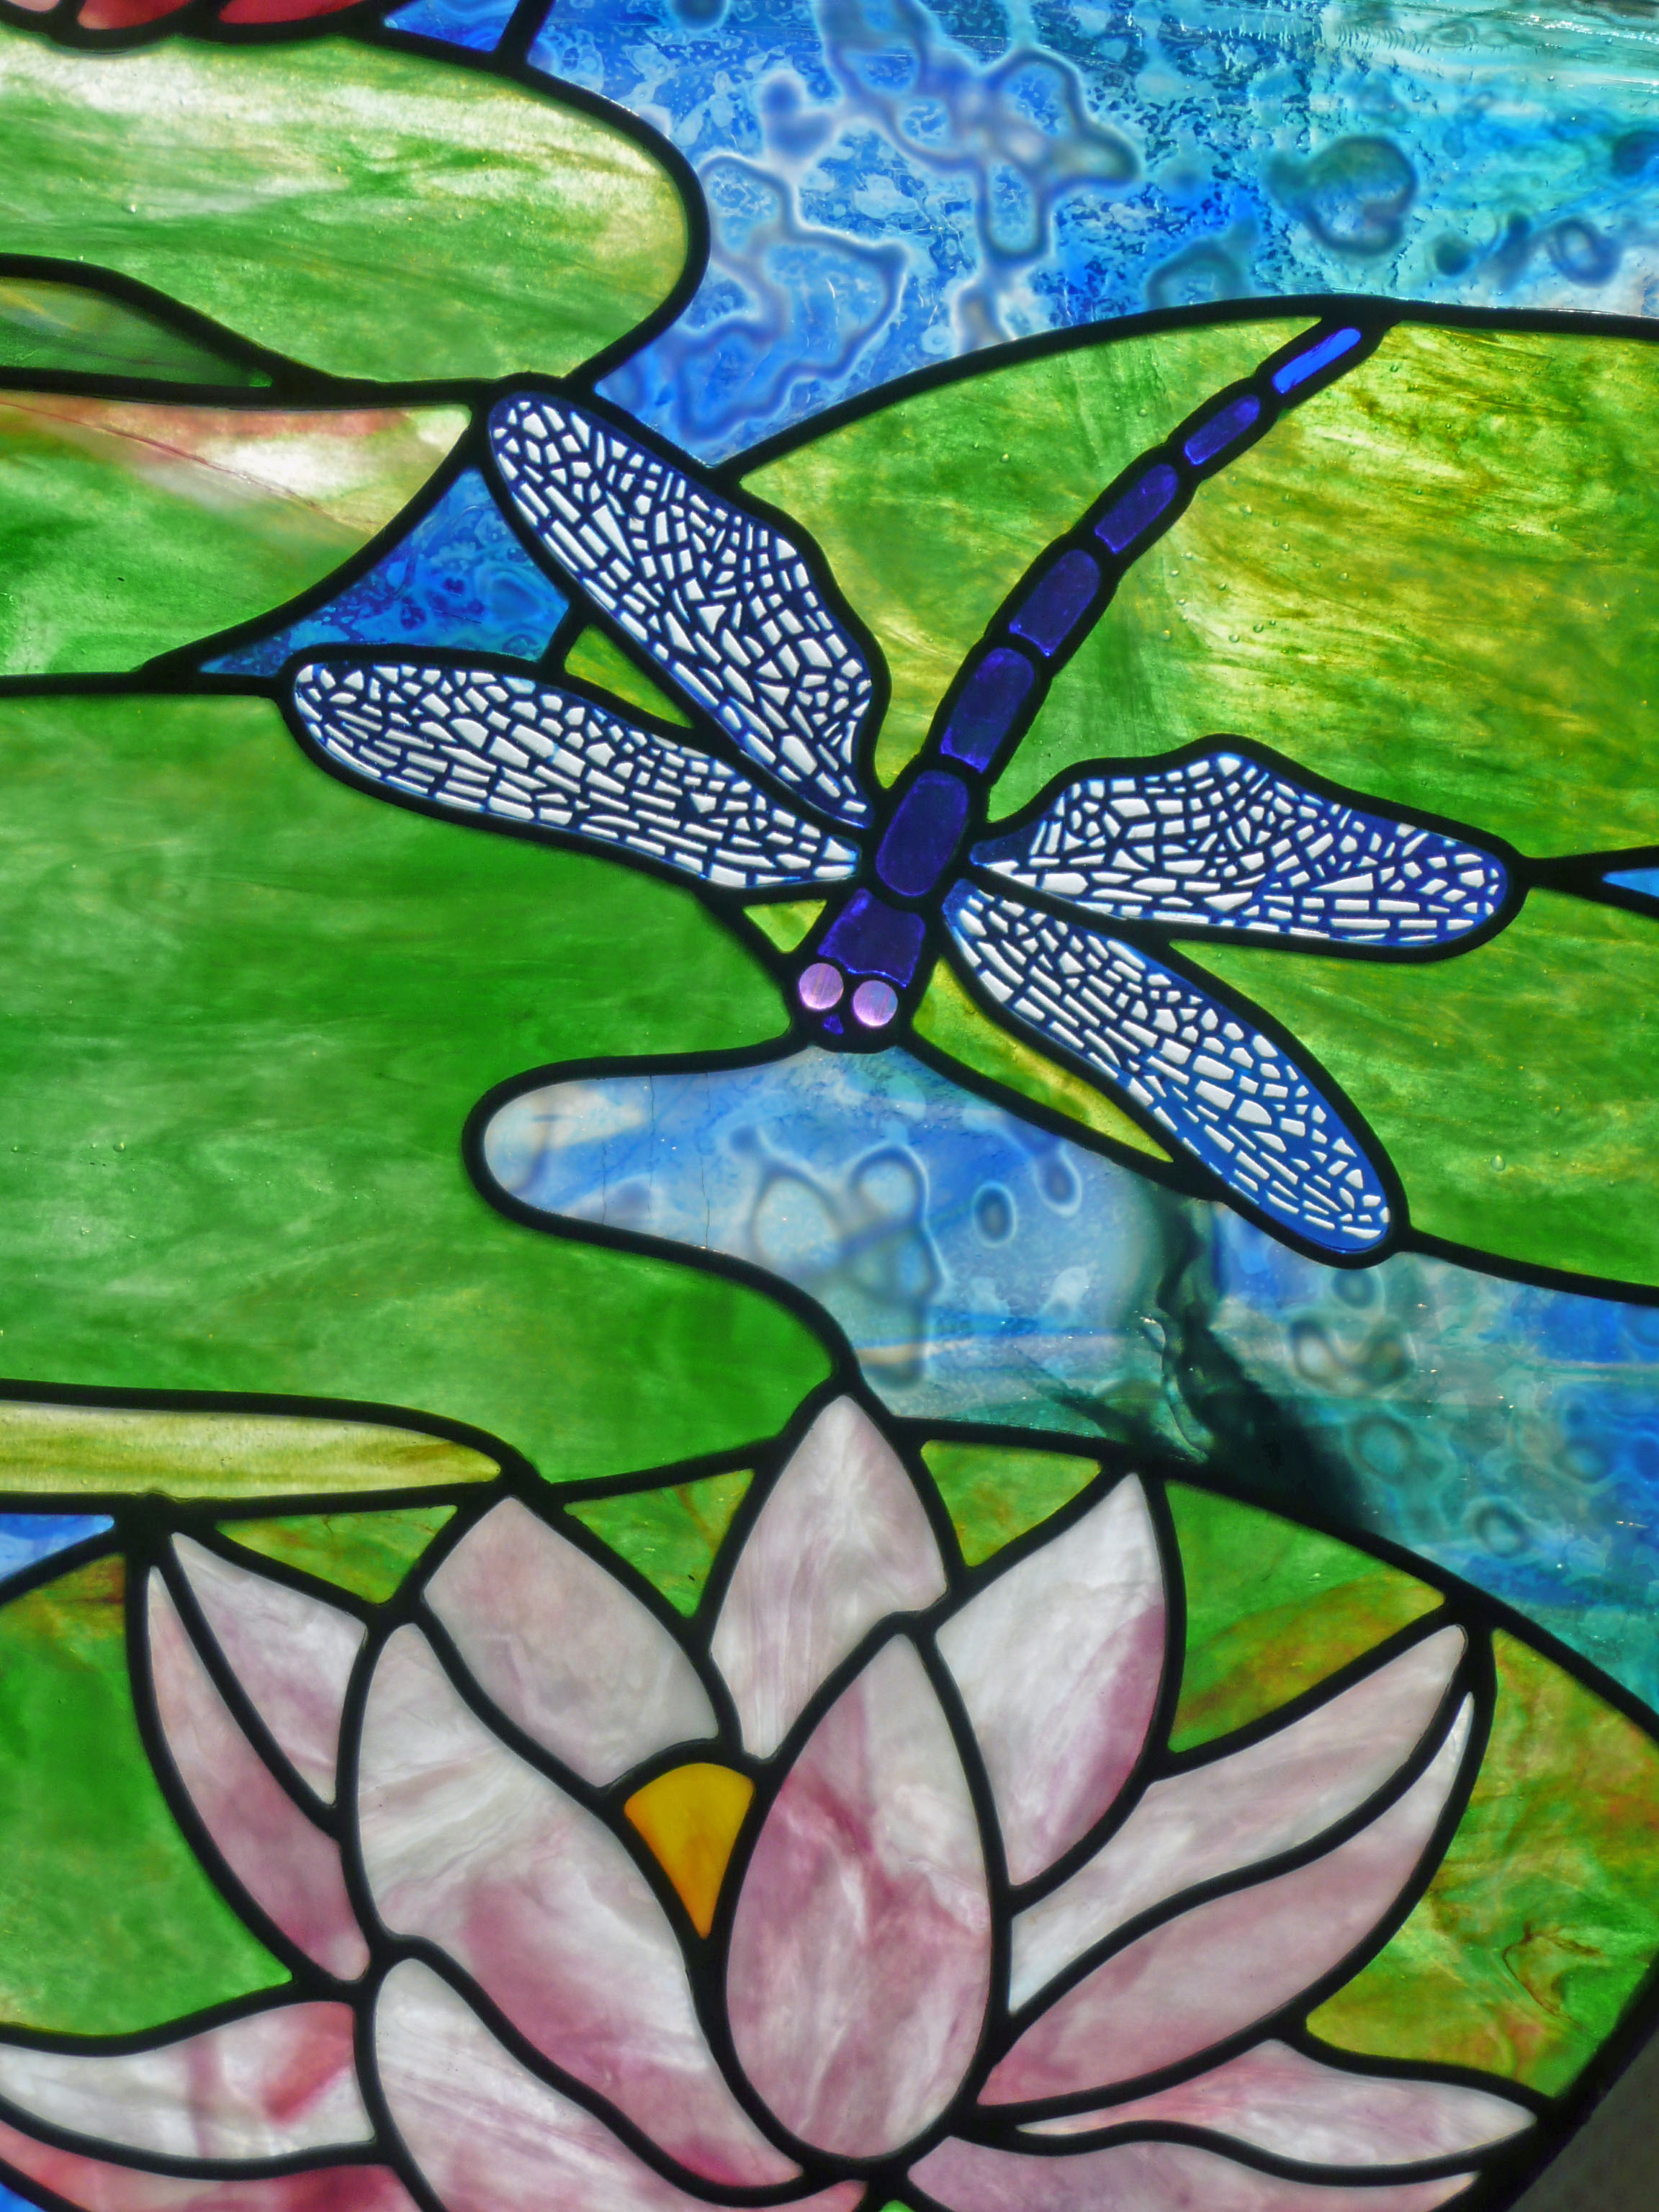 Copy of Lily pad & Dragon Fly window detail.jpg